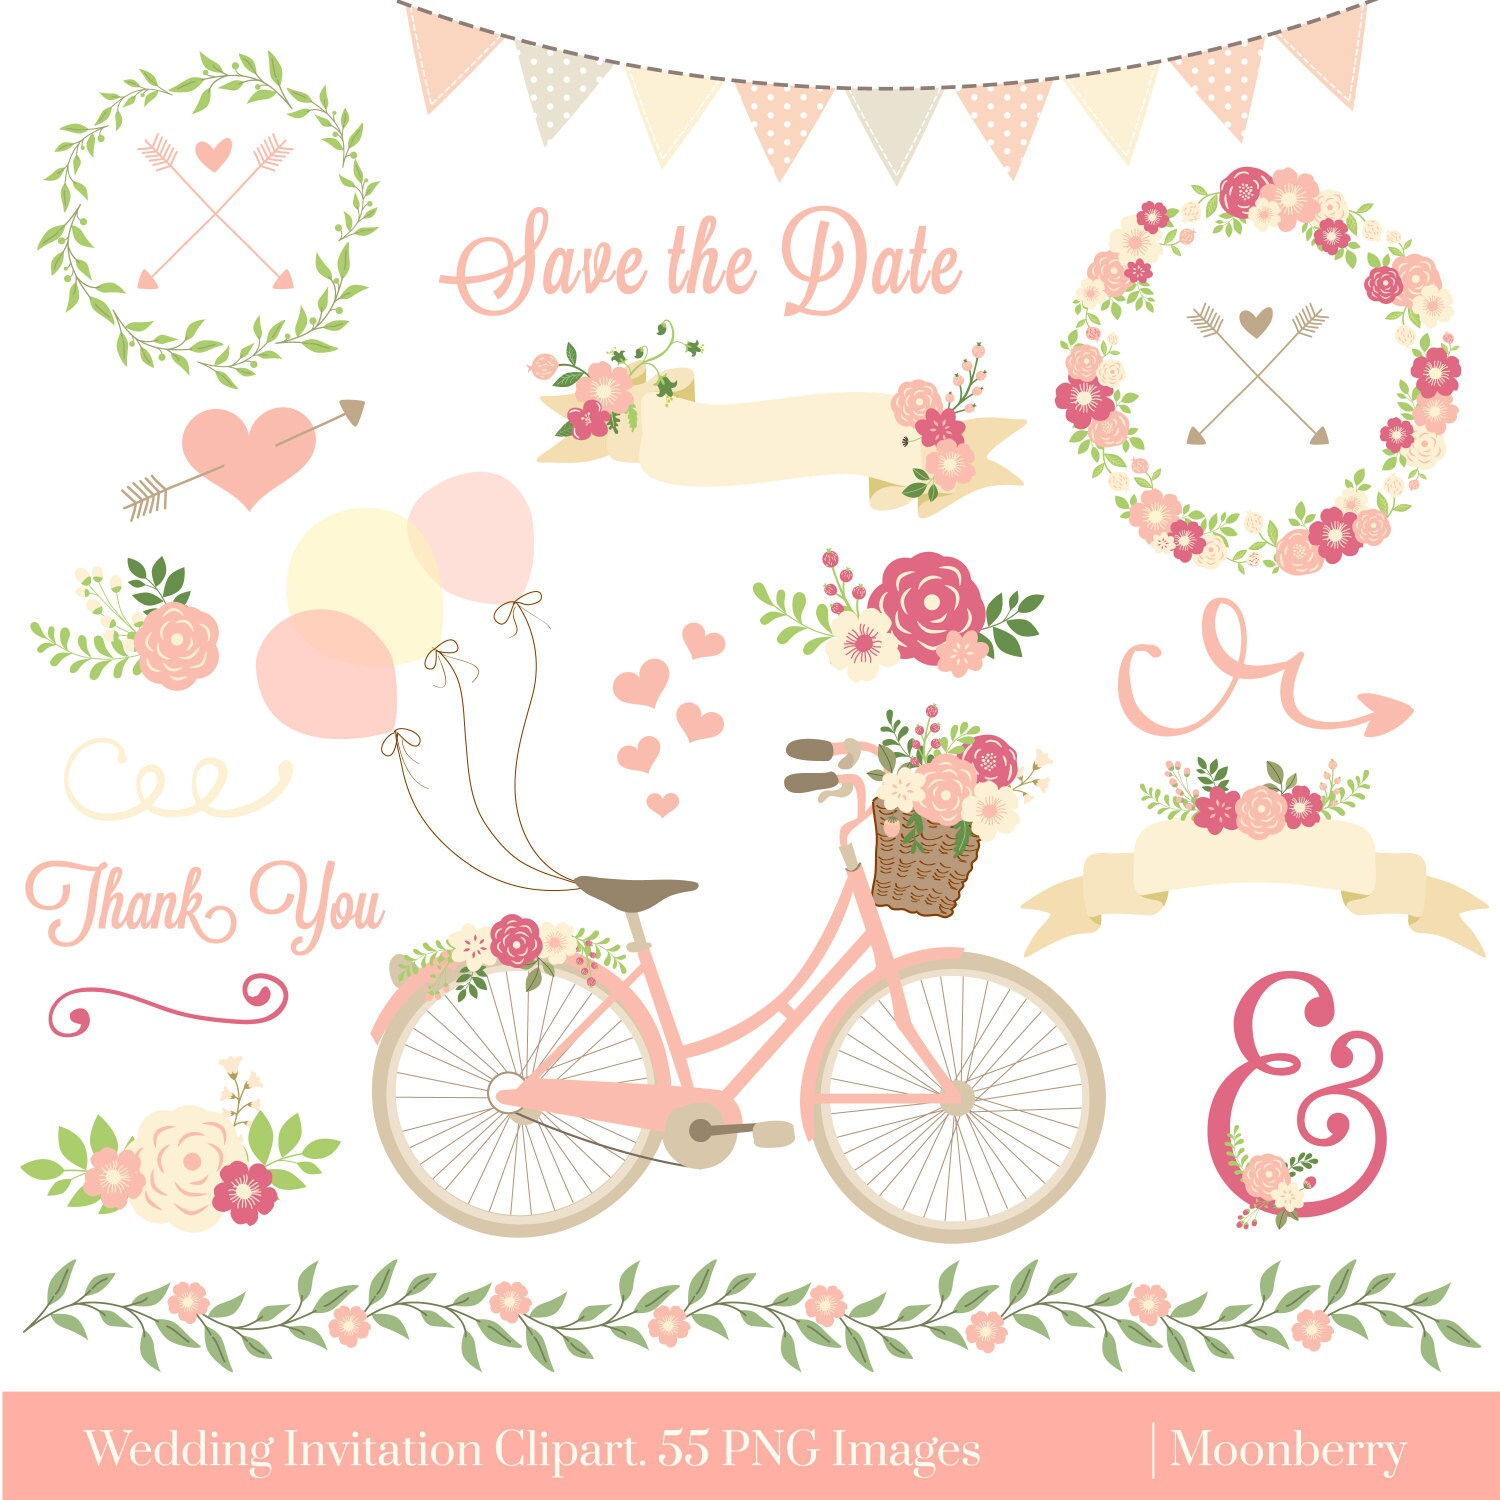 Clipart Flowers Wedding Invitation Clipart Flowers: Wedding Invitation Clipart WEDDING CLIPART Floral